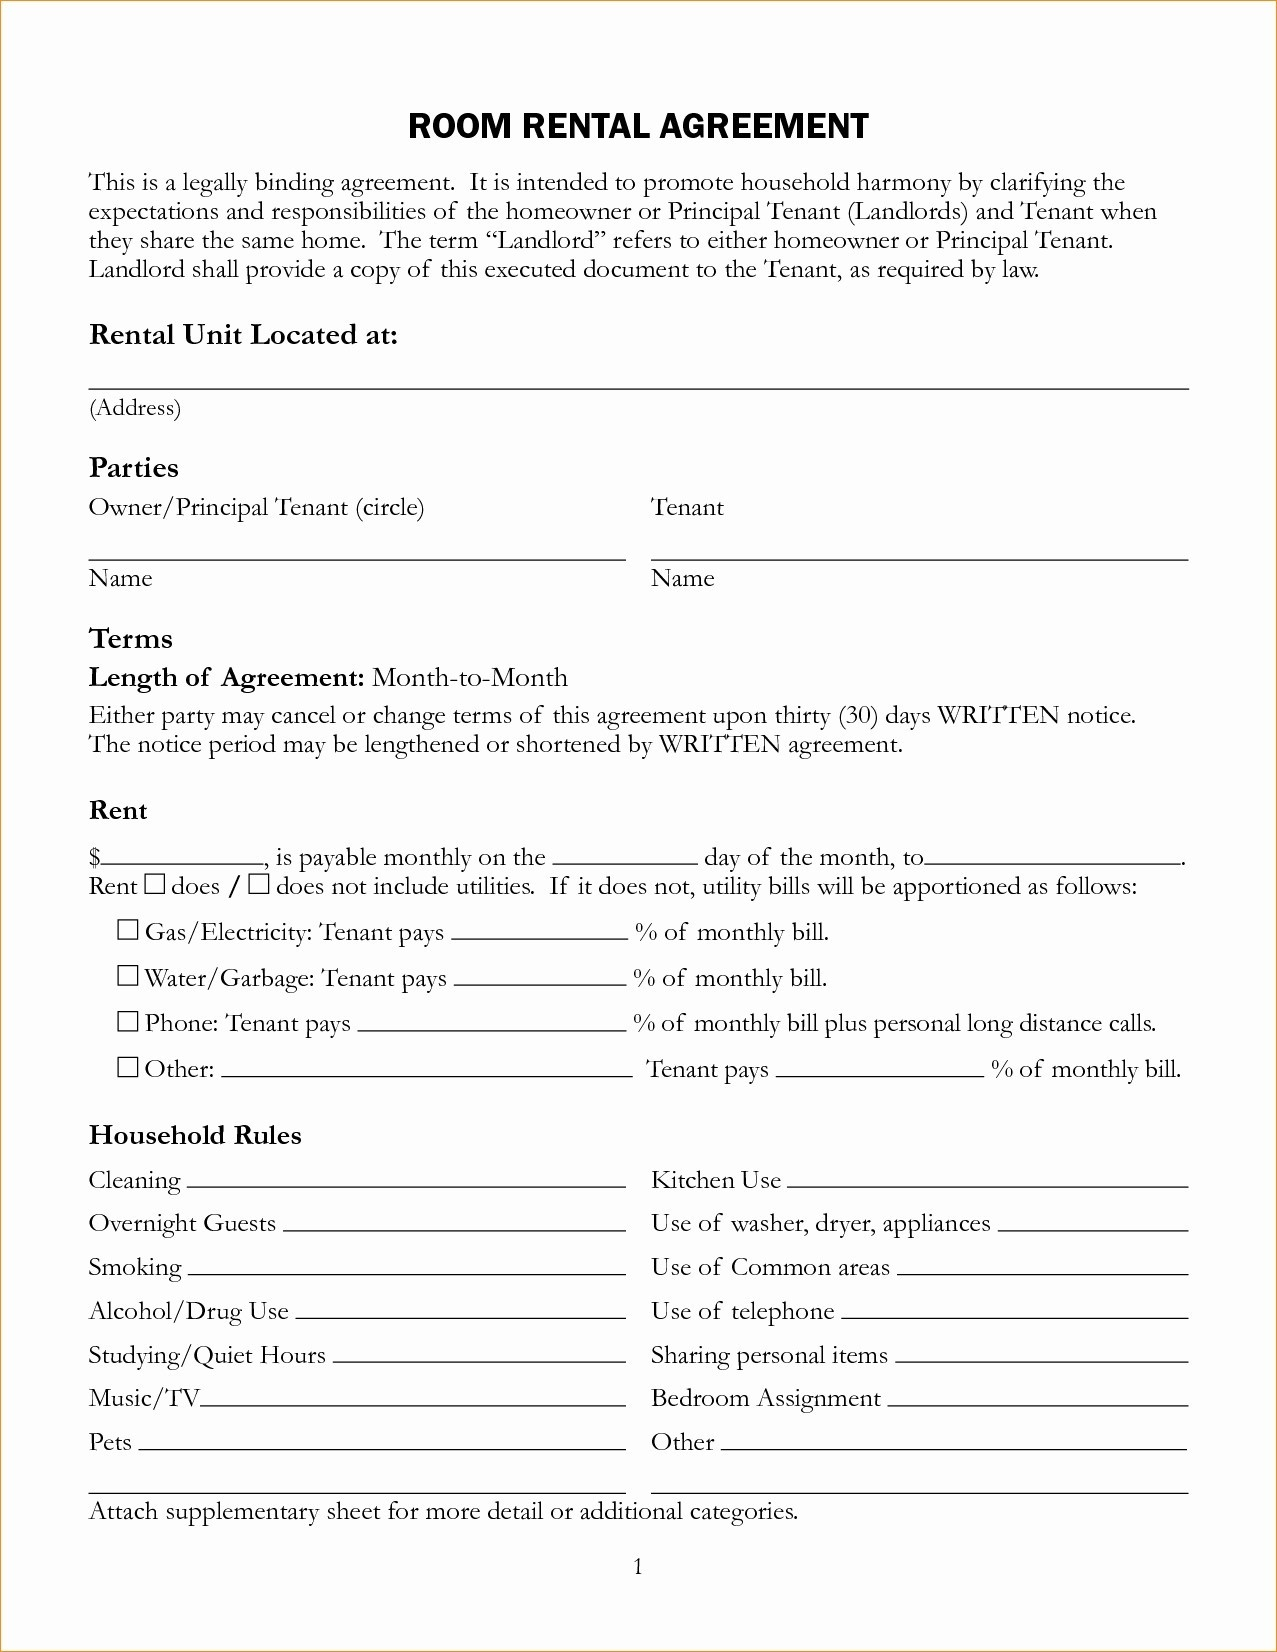 Change Of Ownership Letter to Tenants Template - New Sample Certificate Agreement Fresh Sample Certificate